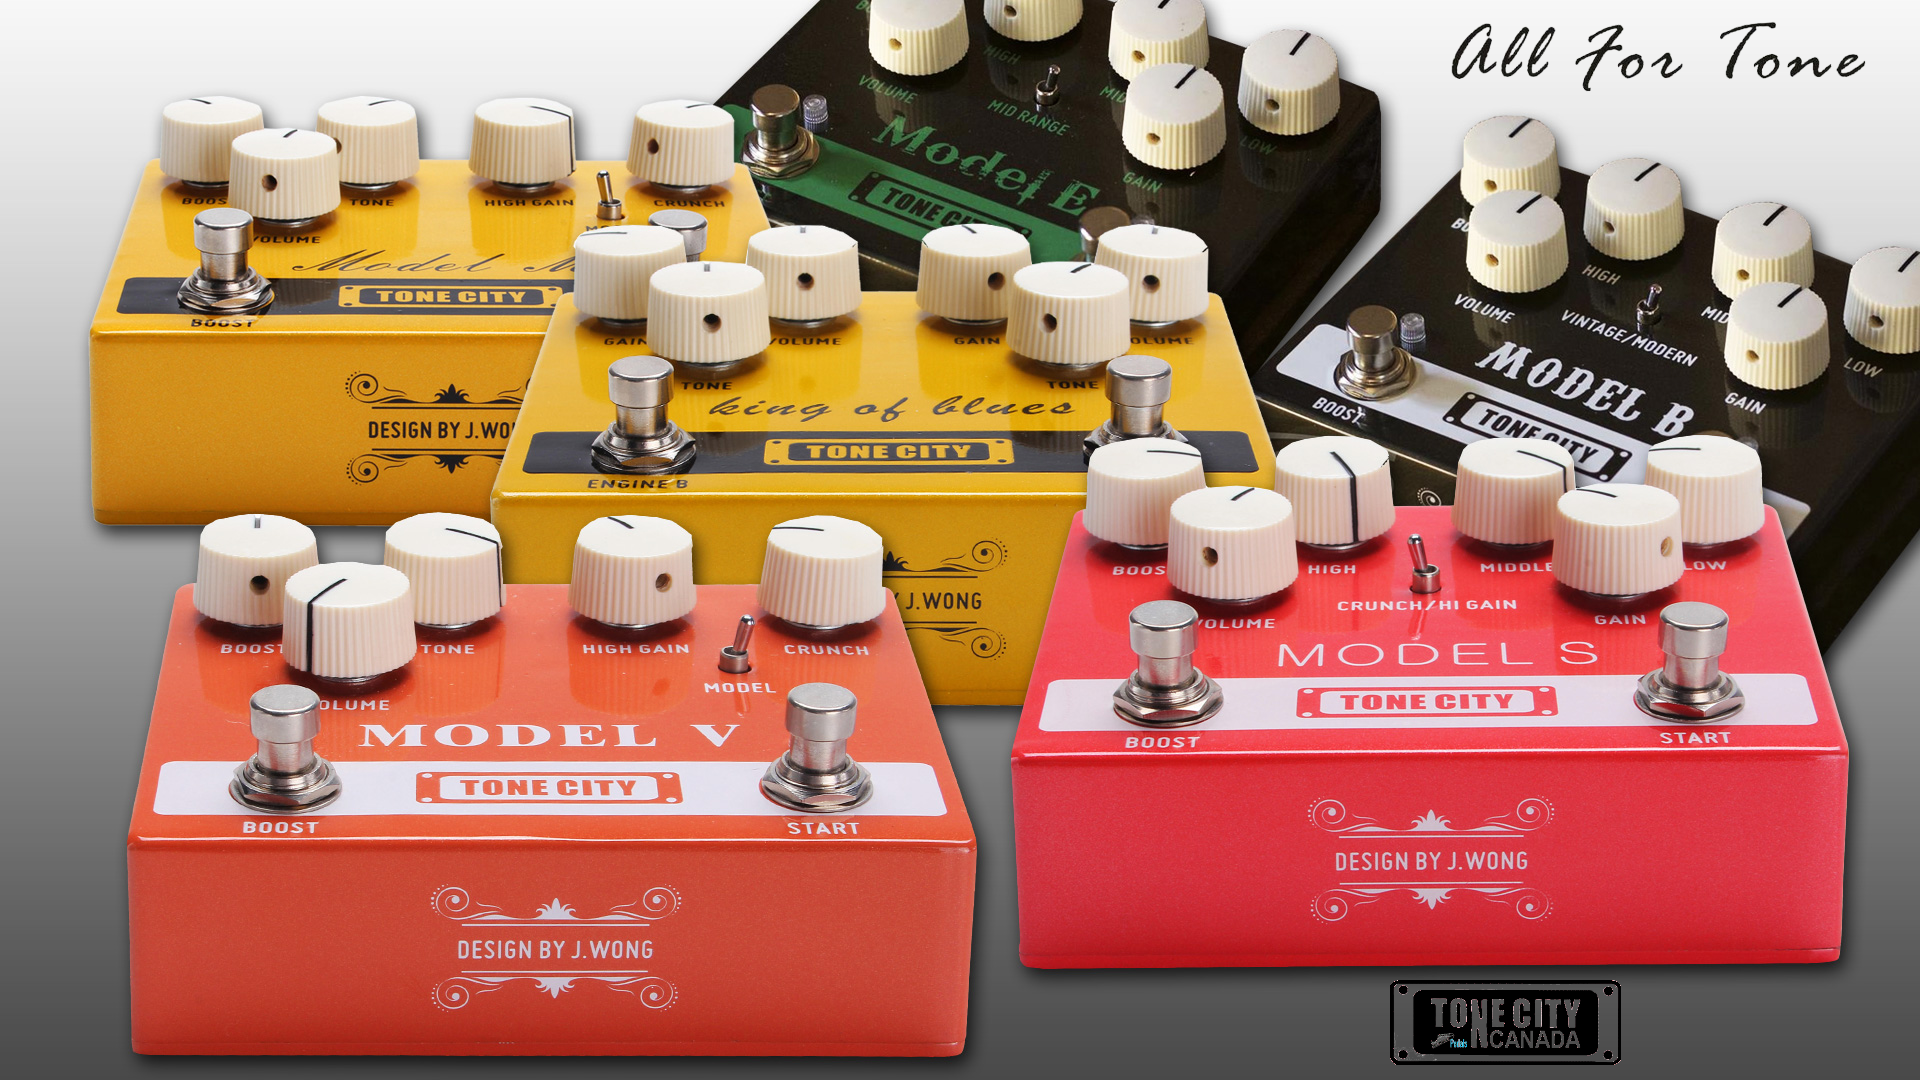 tone city t30 king of blues overdrive klon style music express canada. Black Bedroom Furniture Sets. Home Design Ideas